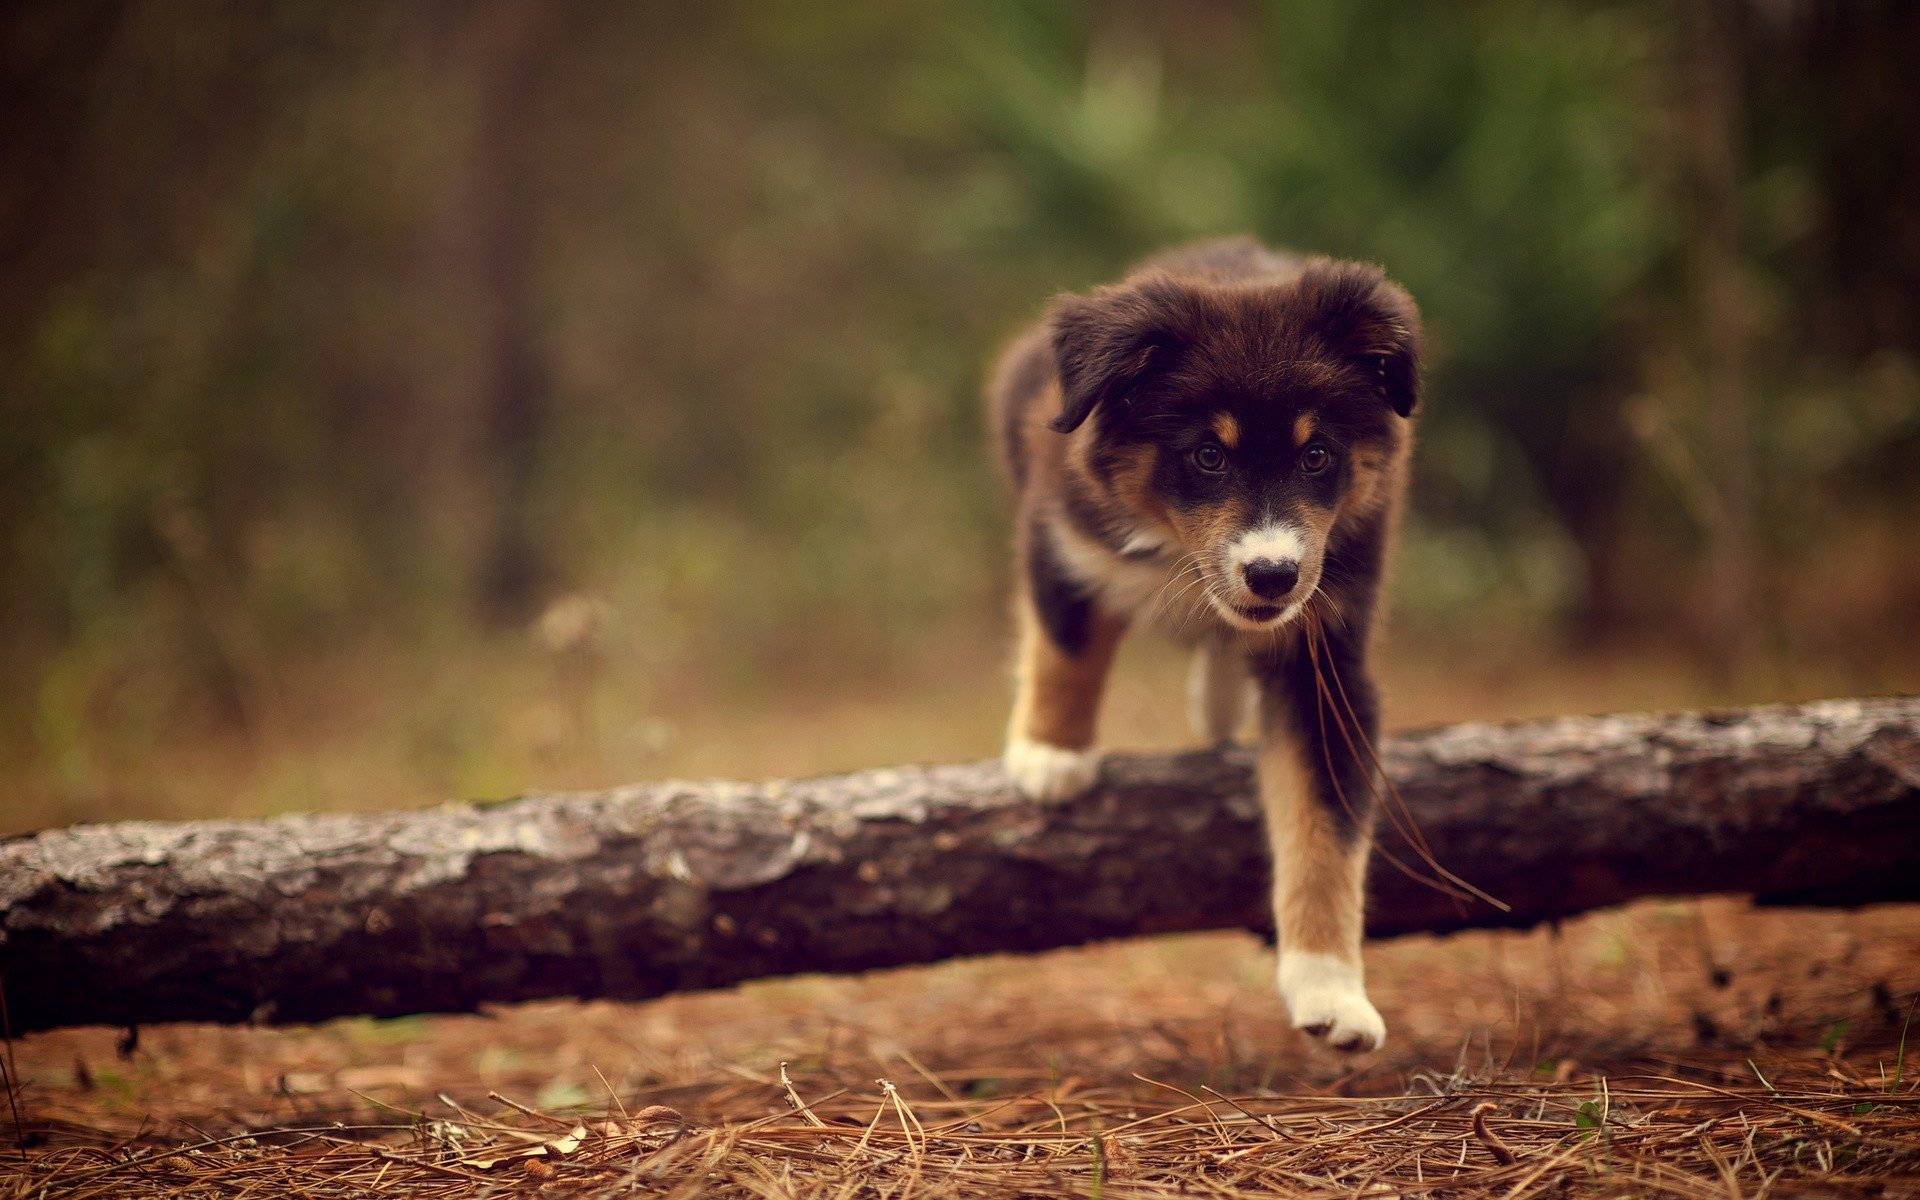 Cute Puppy In The Woods Wide